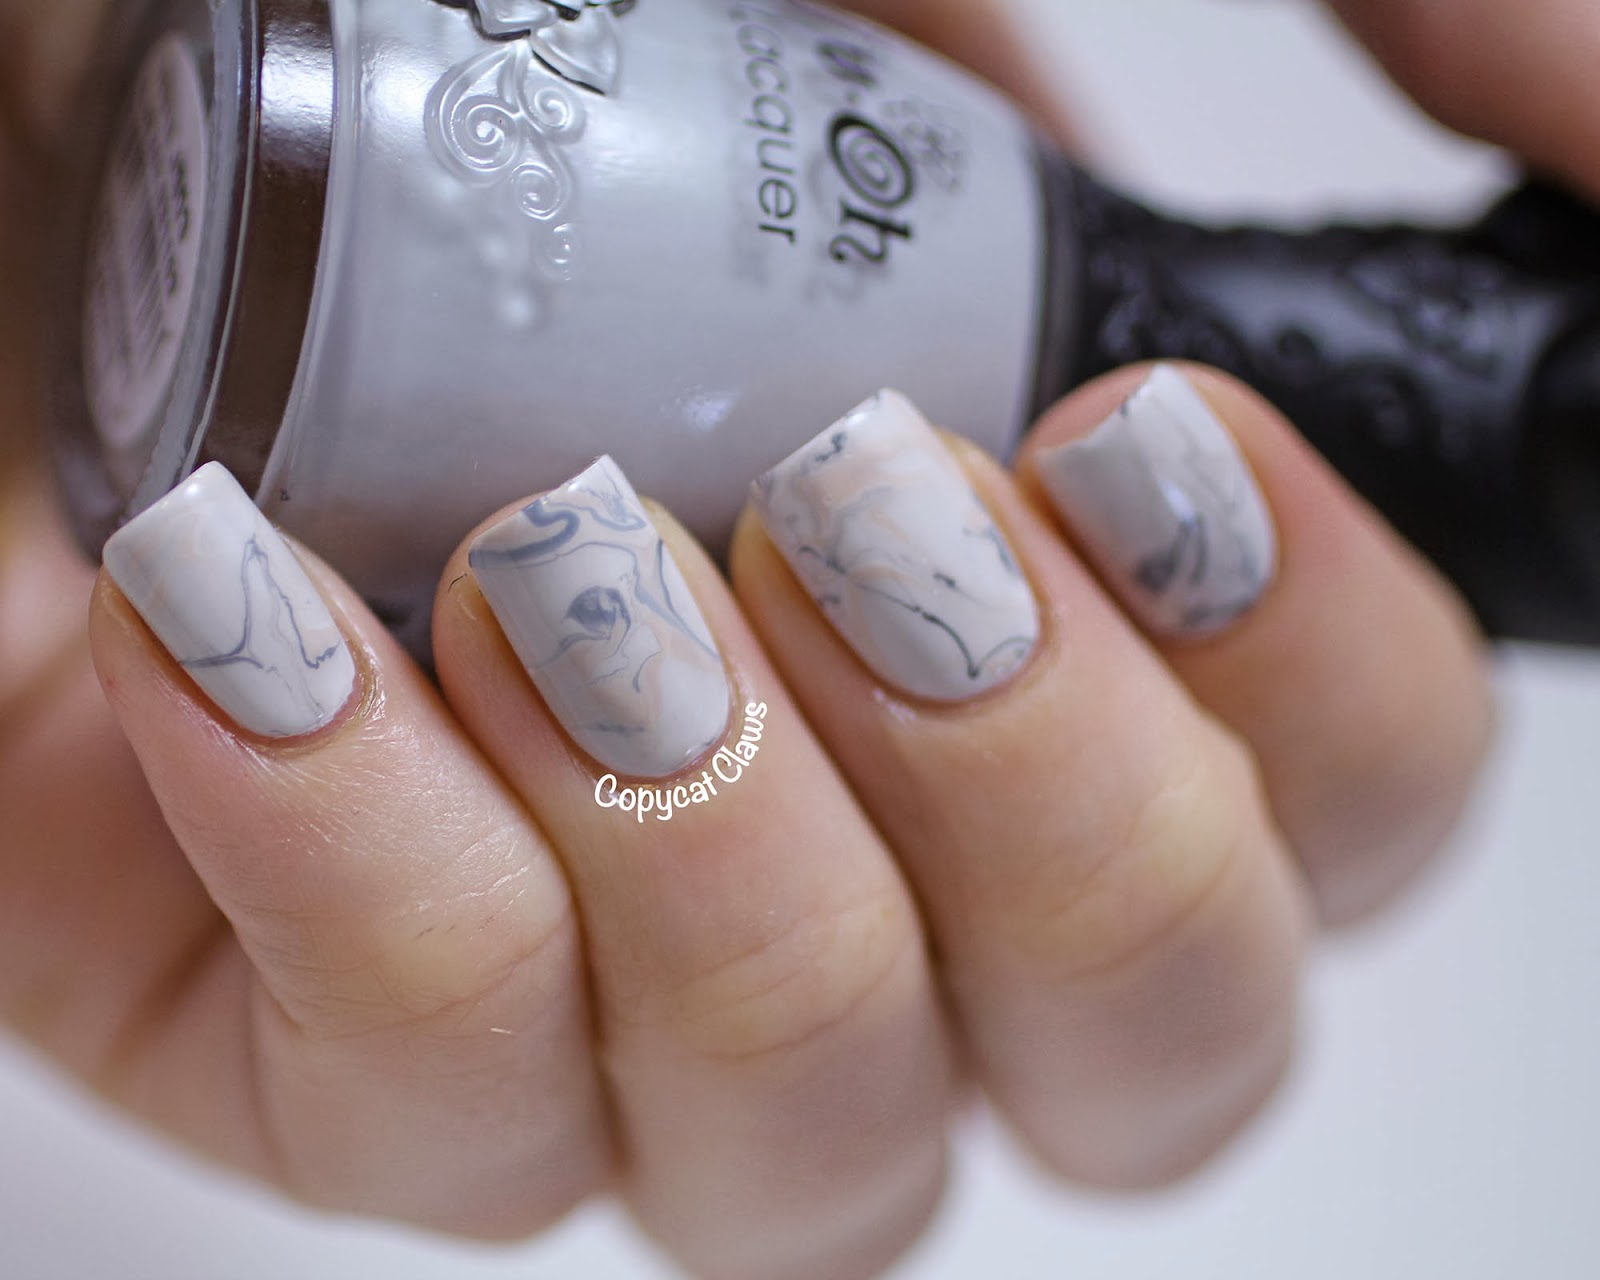 Copycat Claws Marble Nail Art